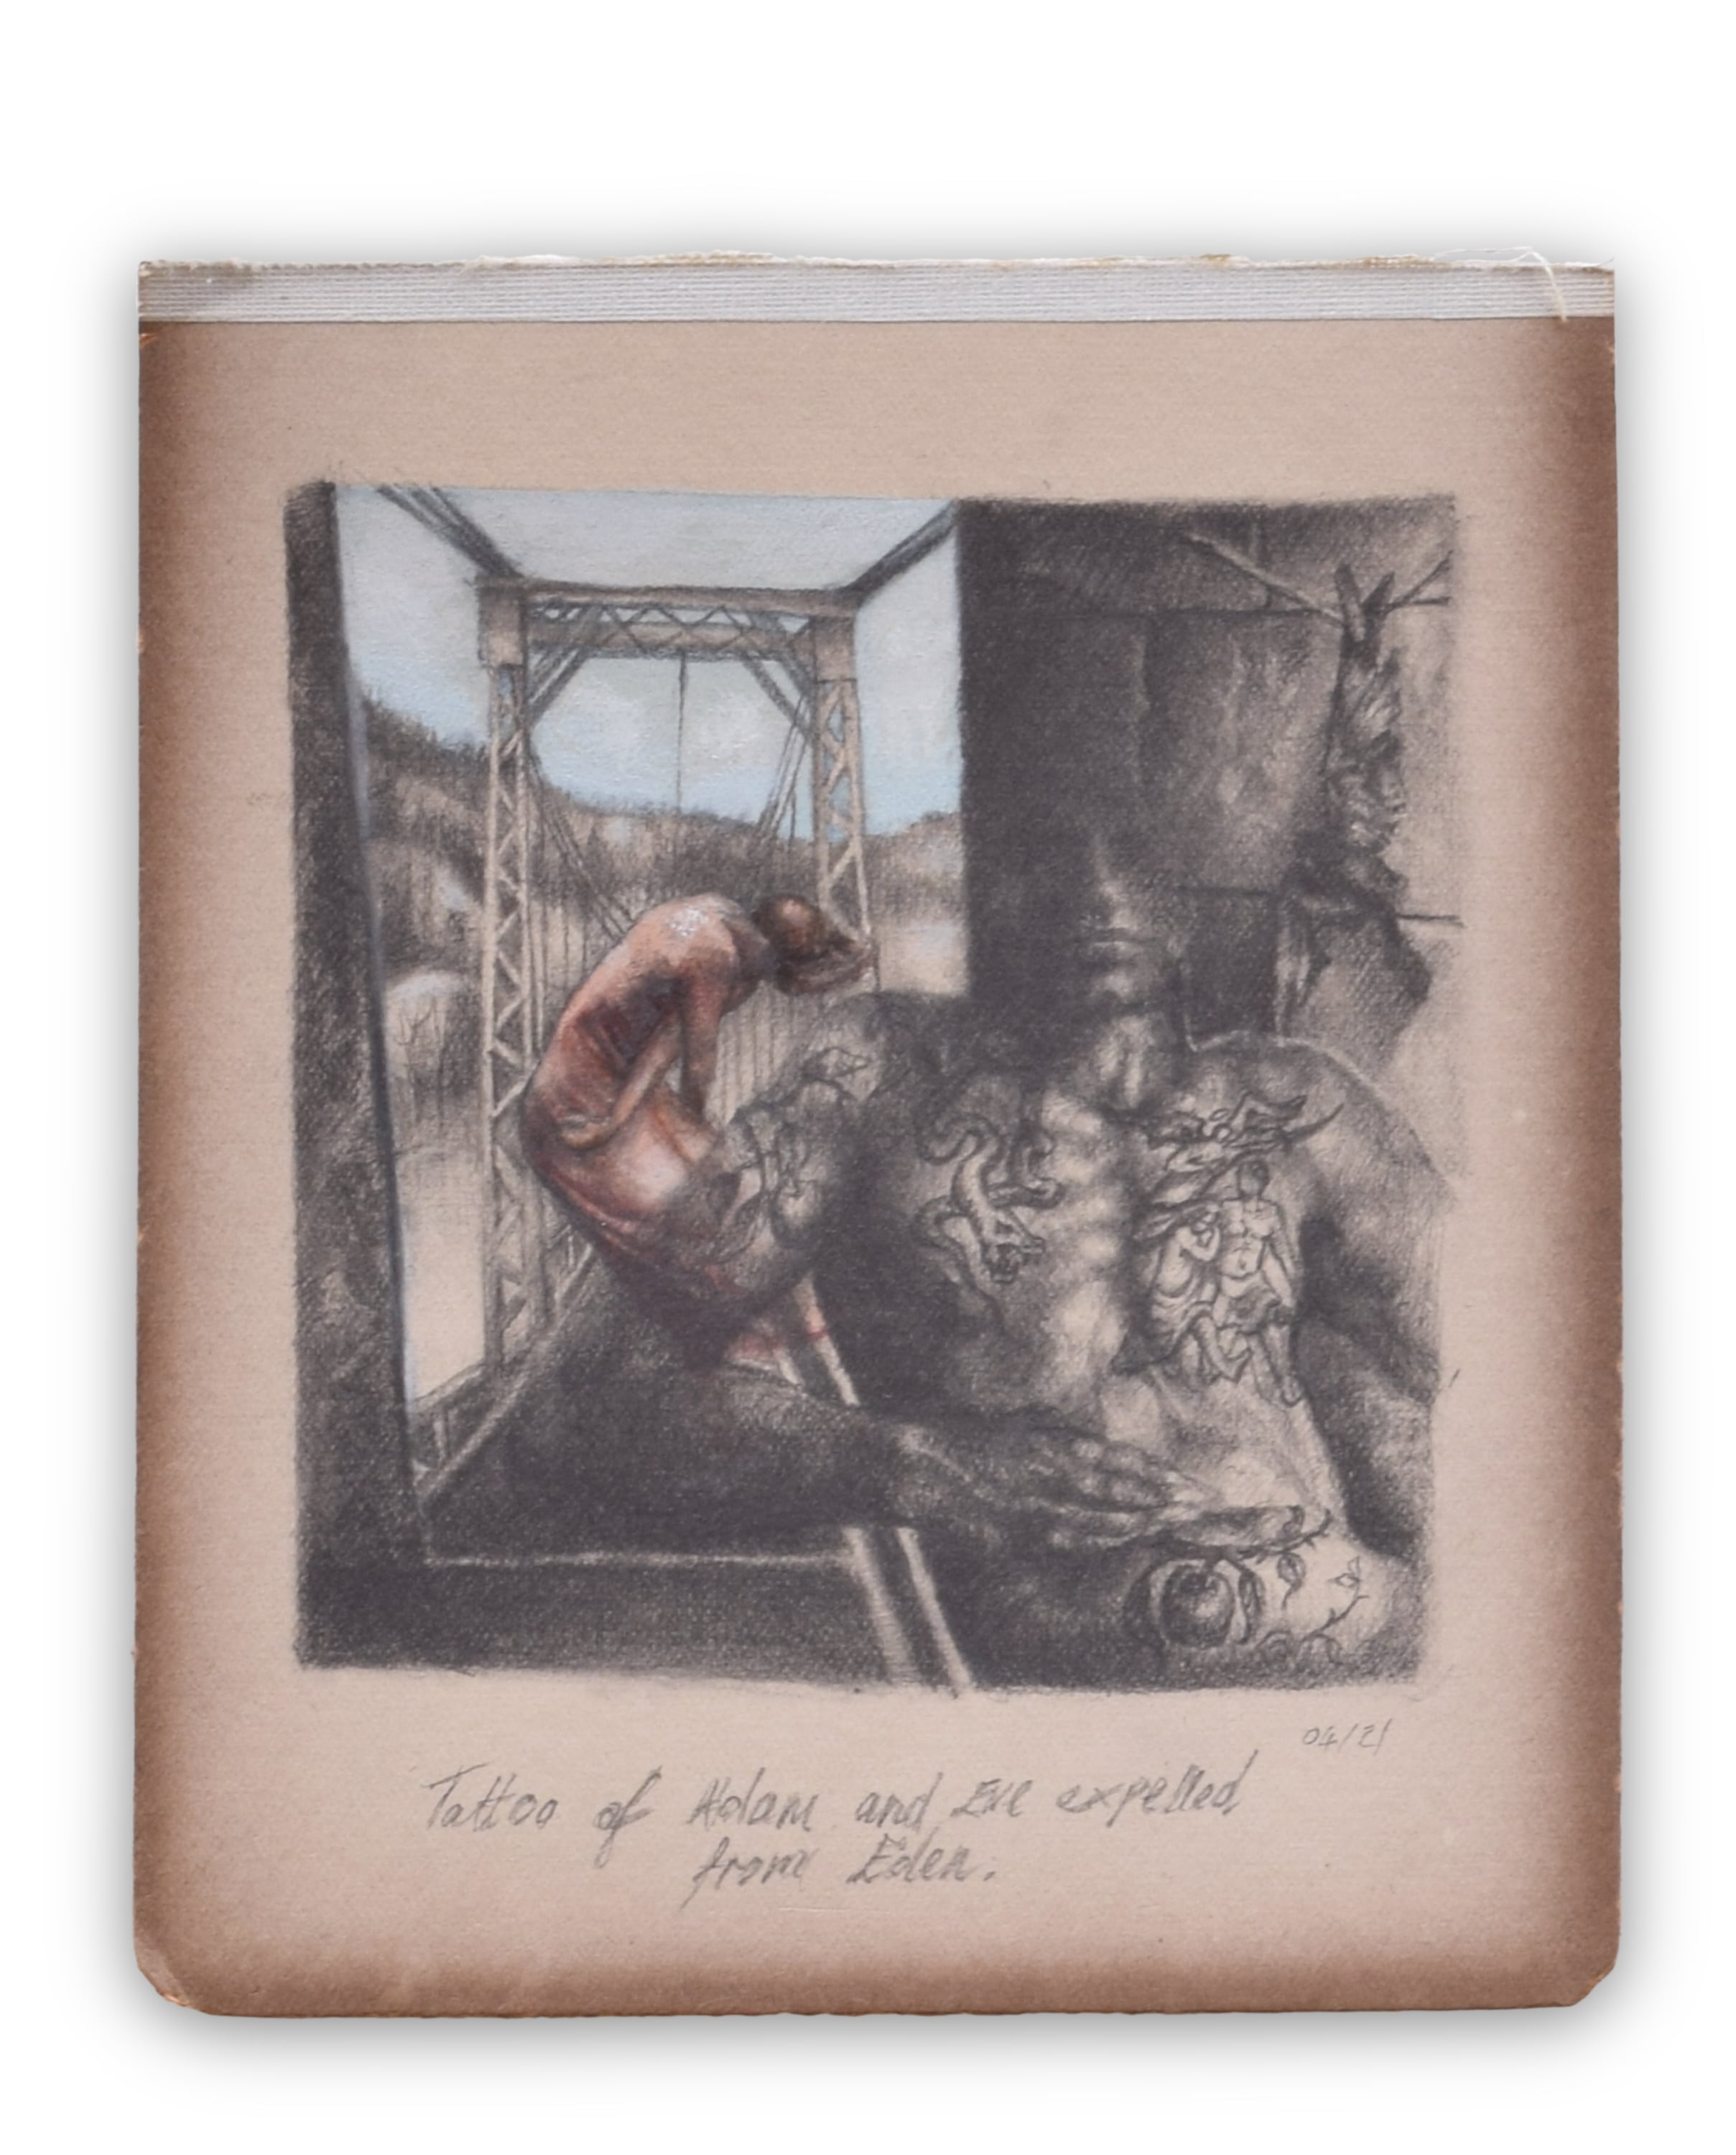 A male torso displays tattoos of a snake, an apple and Adam and Eve being chased by an angel. His head disappears. A woman behind him, wears a pink dress and stands at the edge of a bridge, her hair being blown by the wind.